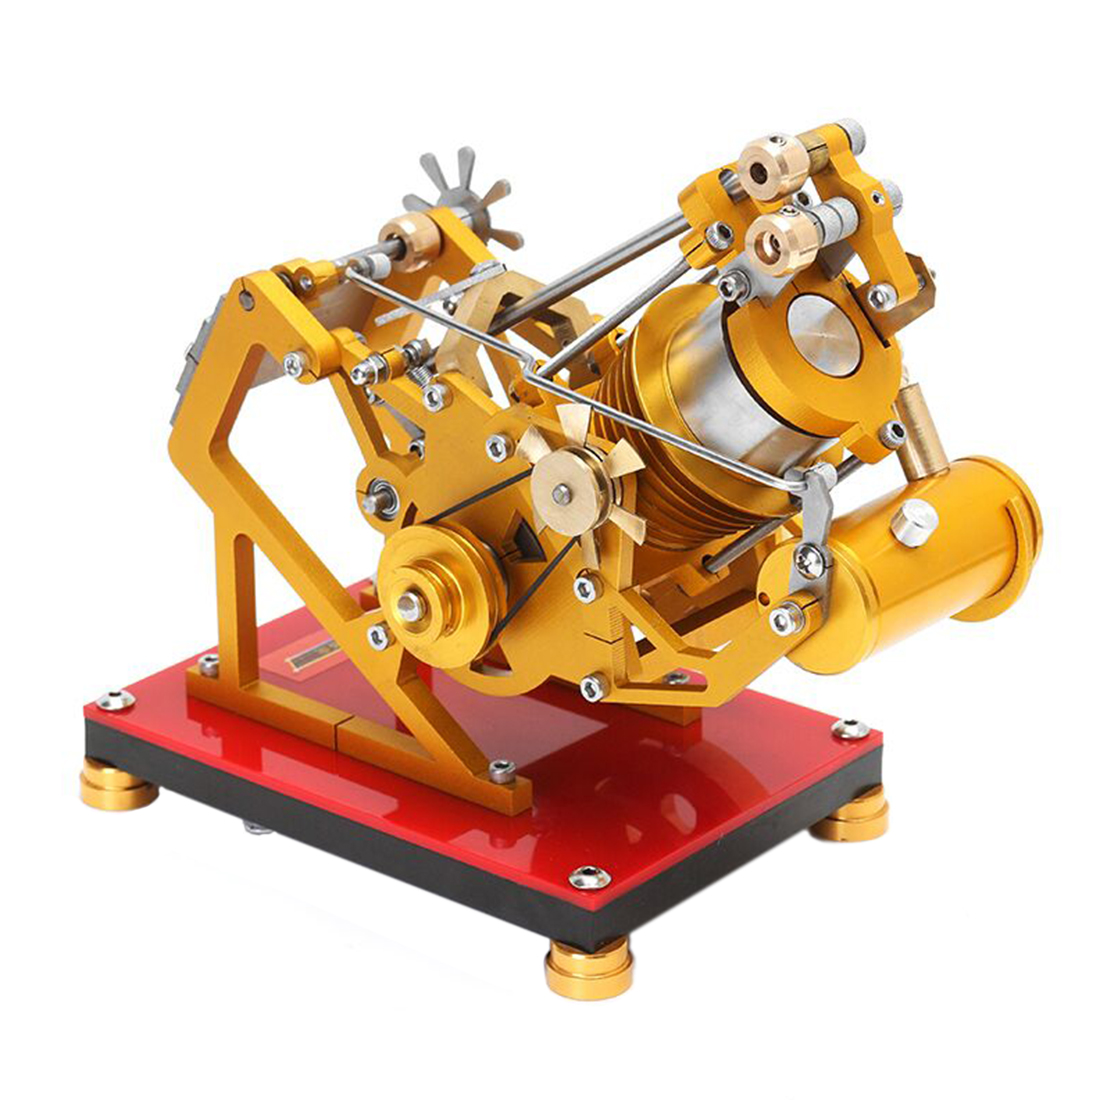 All-metal Suction Type and Vacuum Stirling Engine Model Support  Engine Testing Learning Toys For ChildrenAll-metal Suction Type and Vacuum Stirling Engine Model Support  Engine Testing Learning Toys For Children